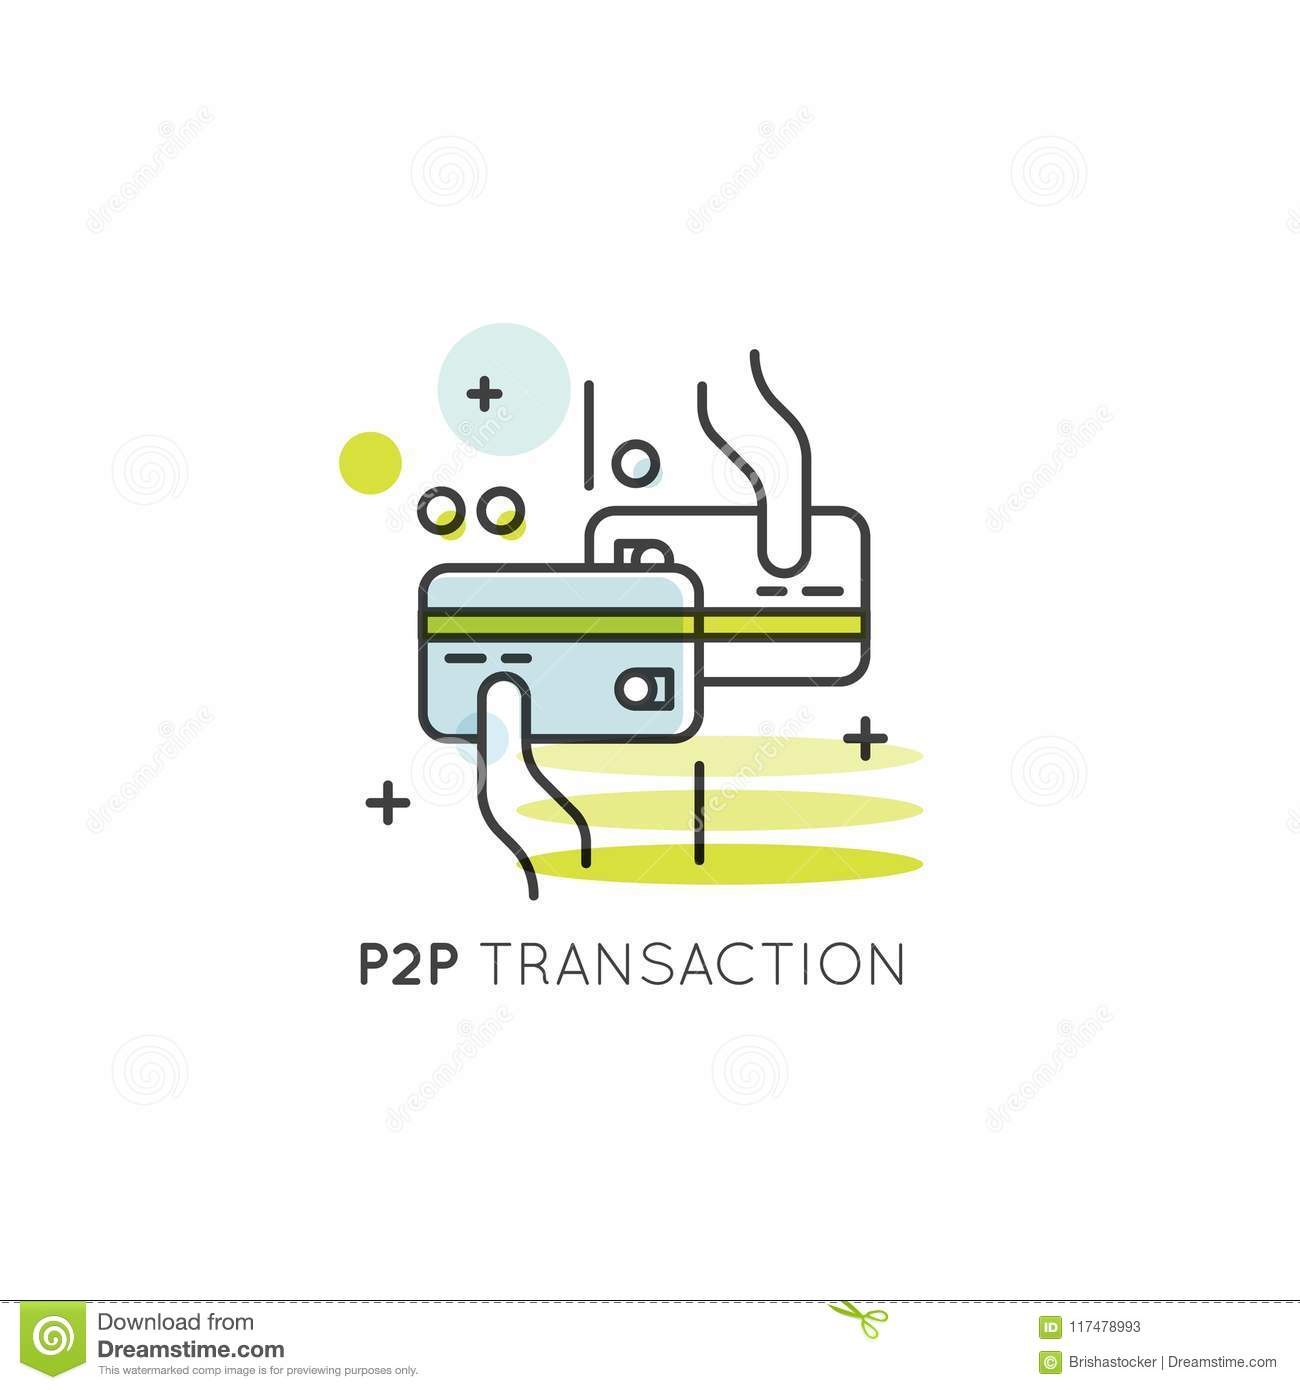 Peer-to-Peer Transaction, Mobile and Desktop Application Development, Direct Transaction of Funds and Money